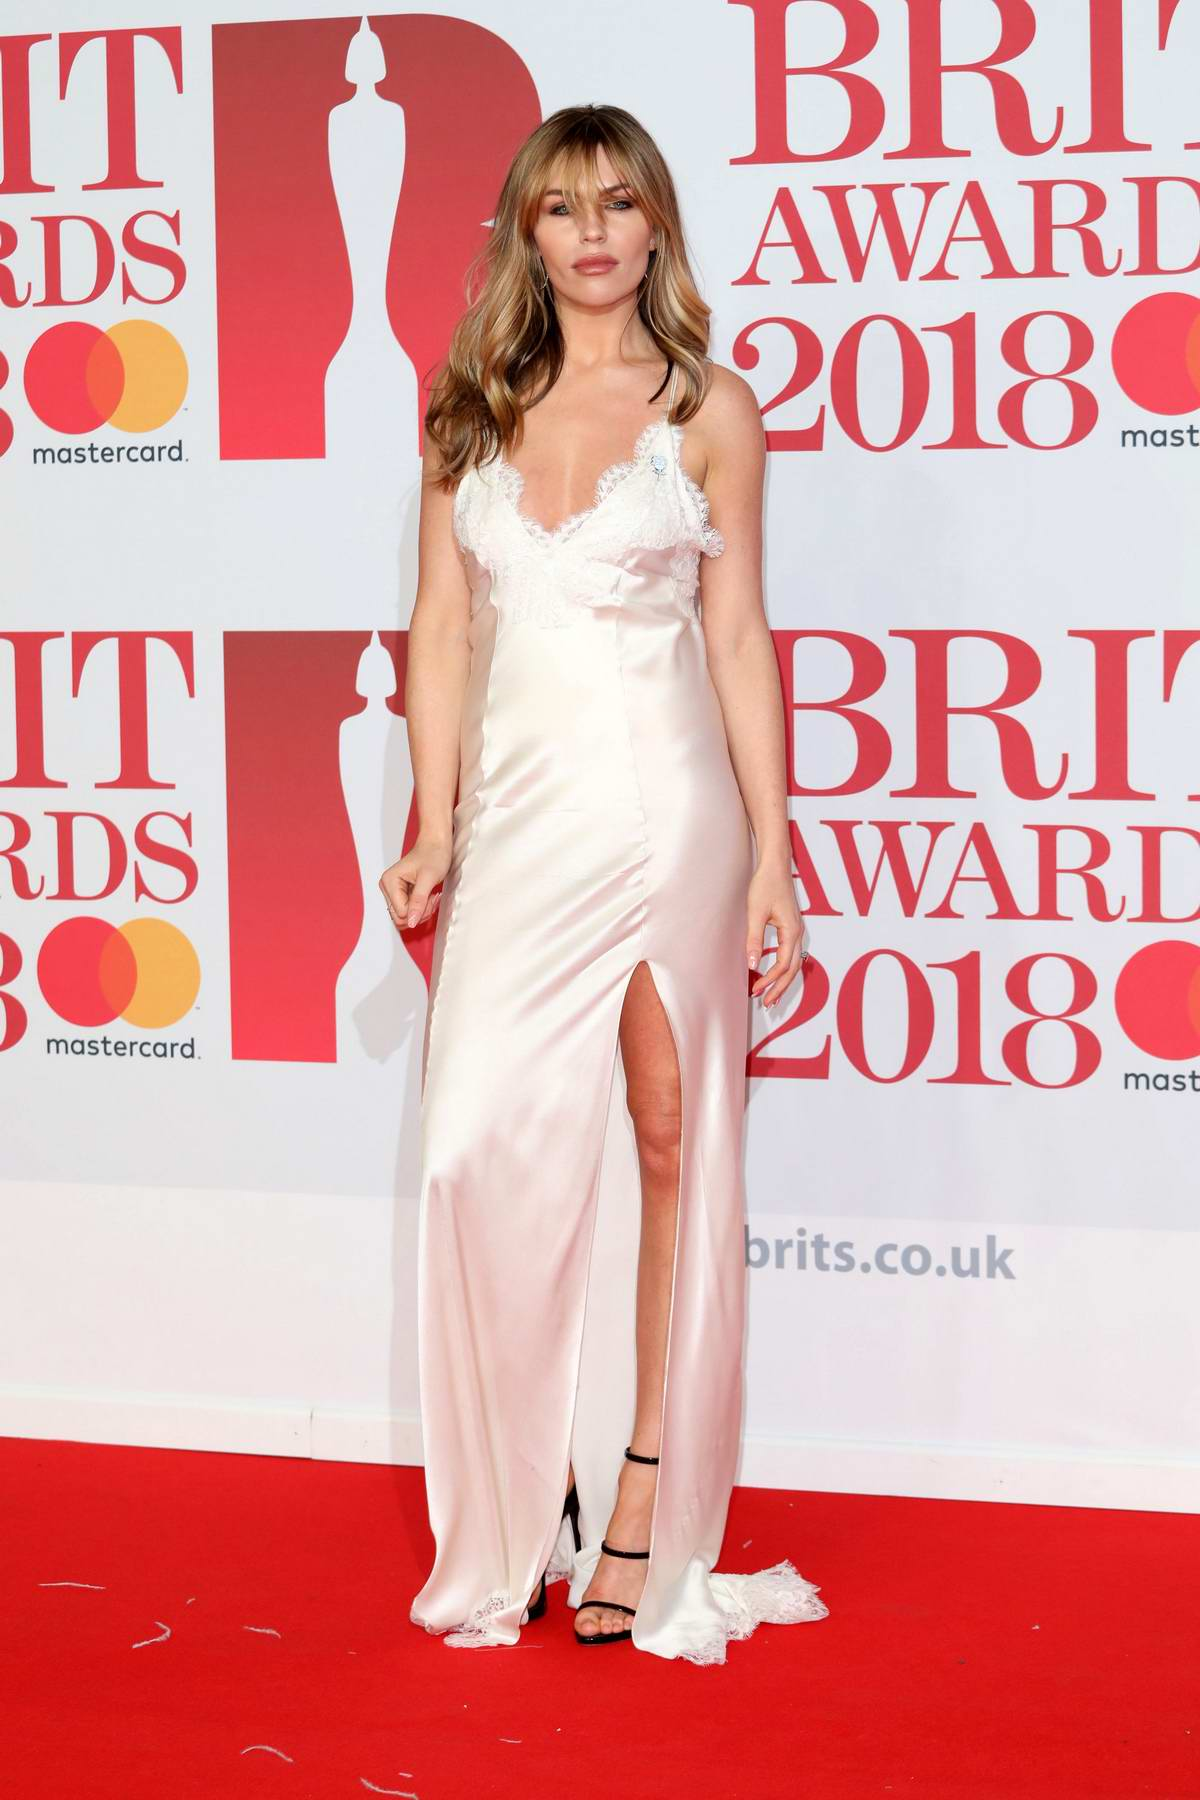 Abbey Clancy attends the 38th Brit Awards, held at the O2 Arena in London